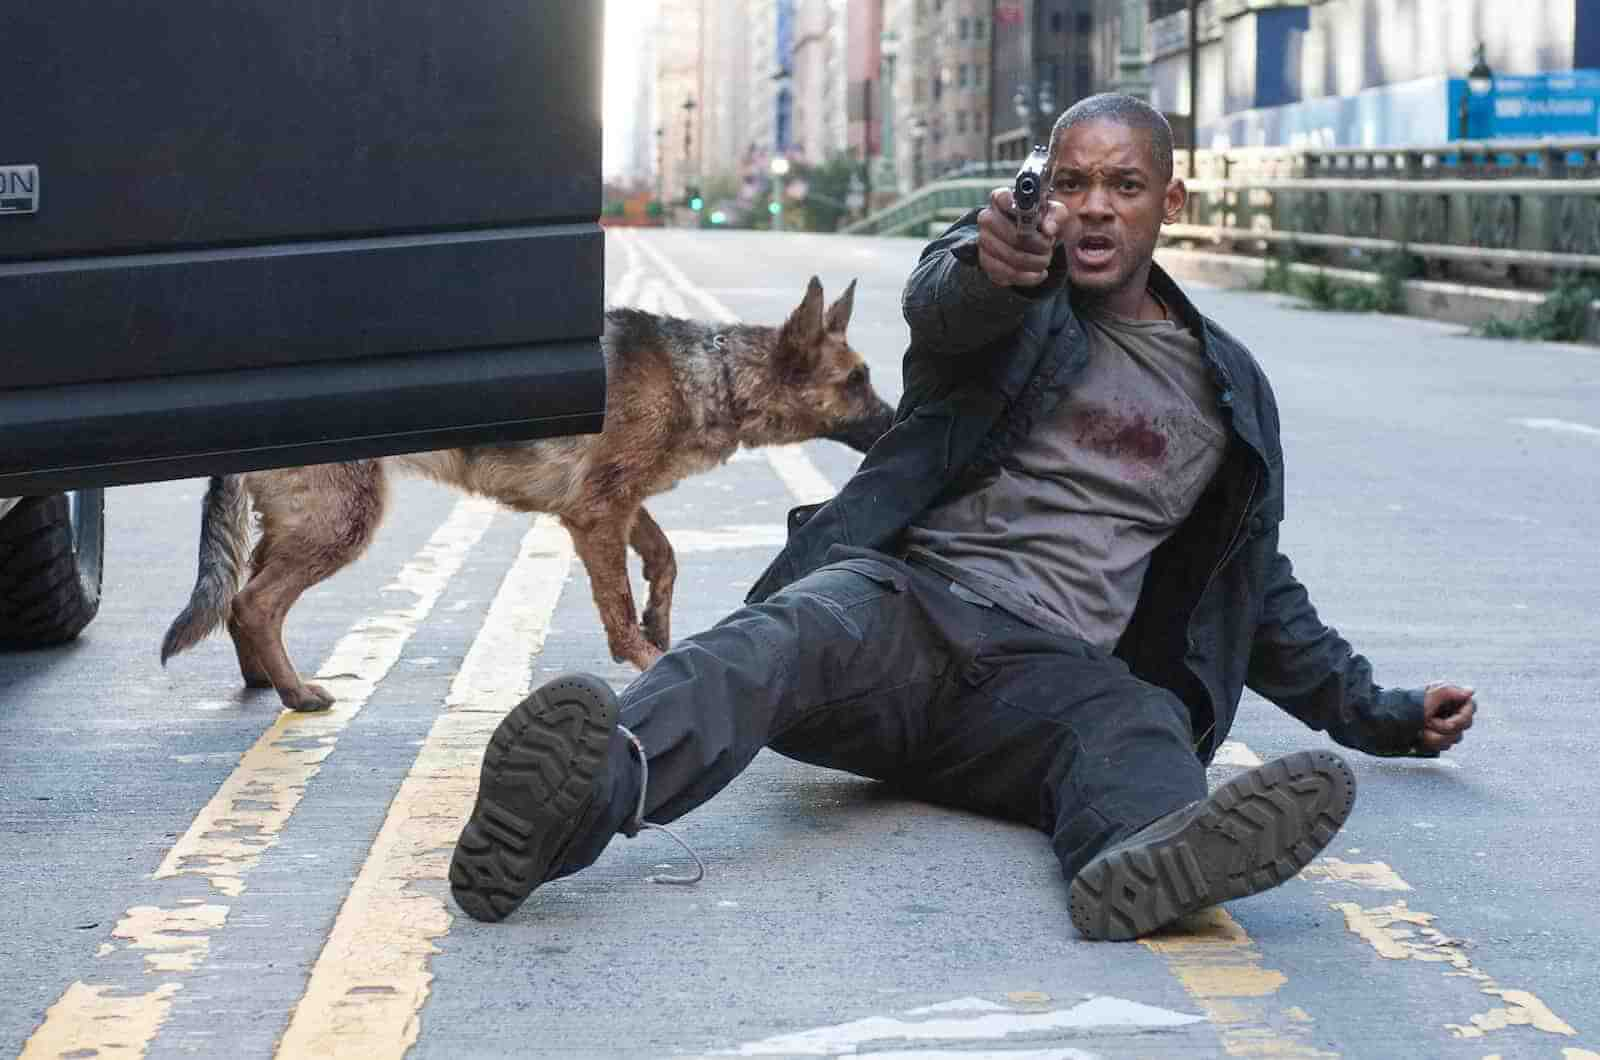 High Angle Shot - Camera Angles - I am Legend